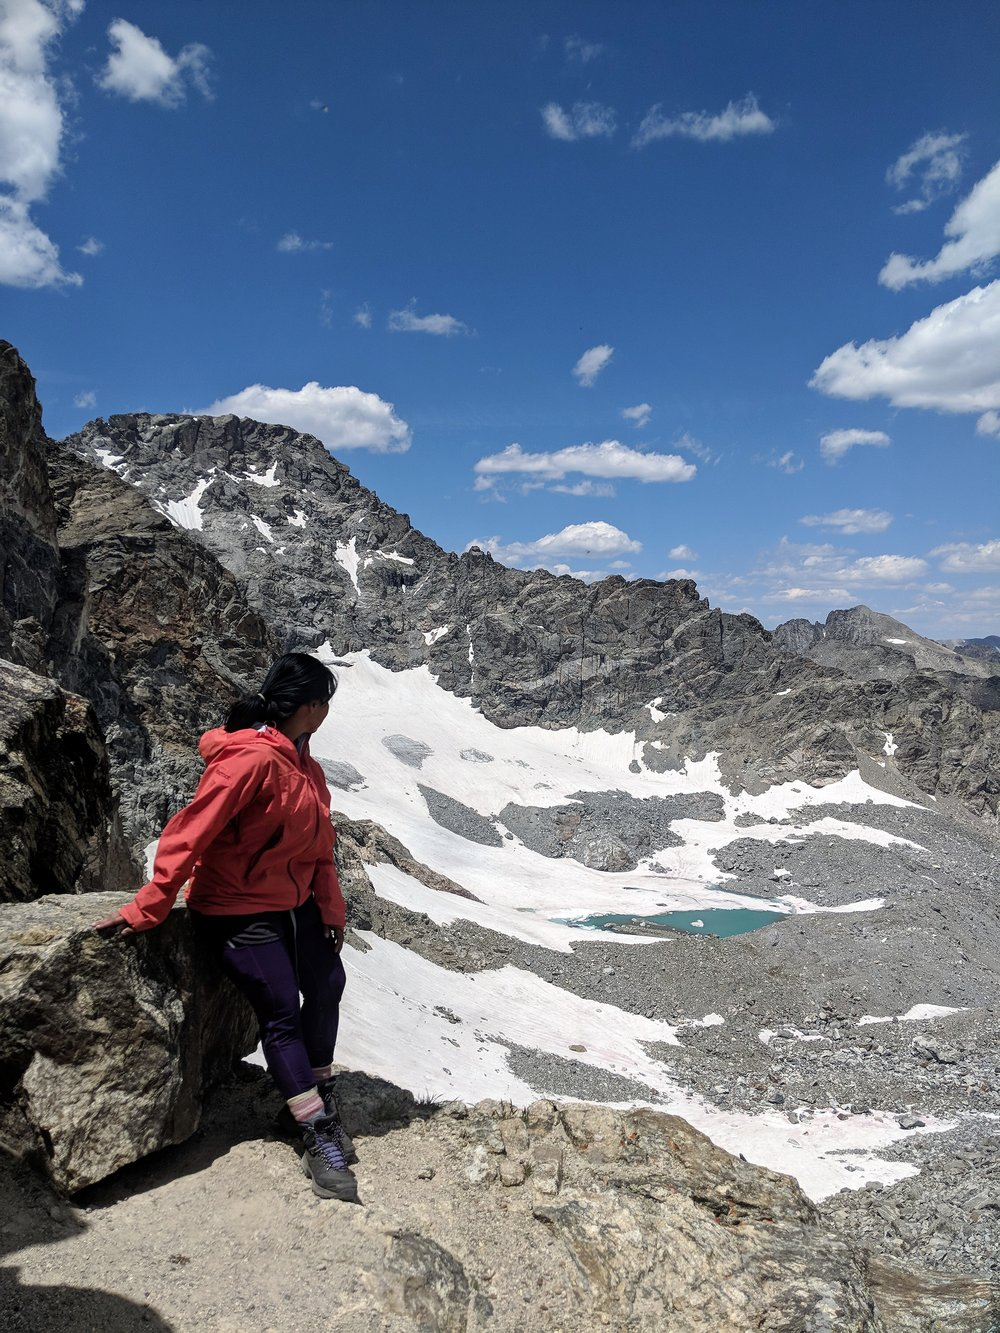 Training in Colorado's Indian Peaks Wilderness.